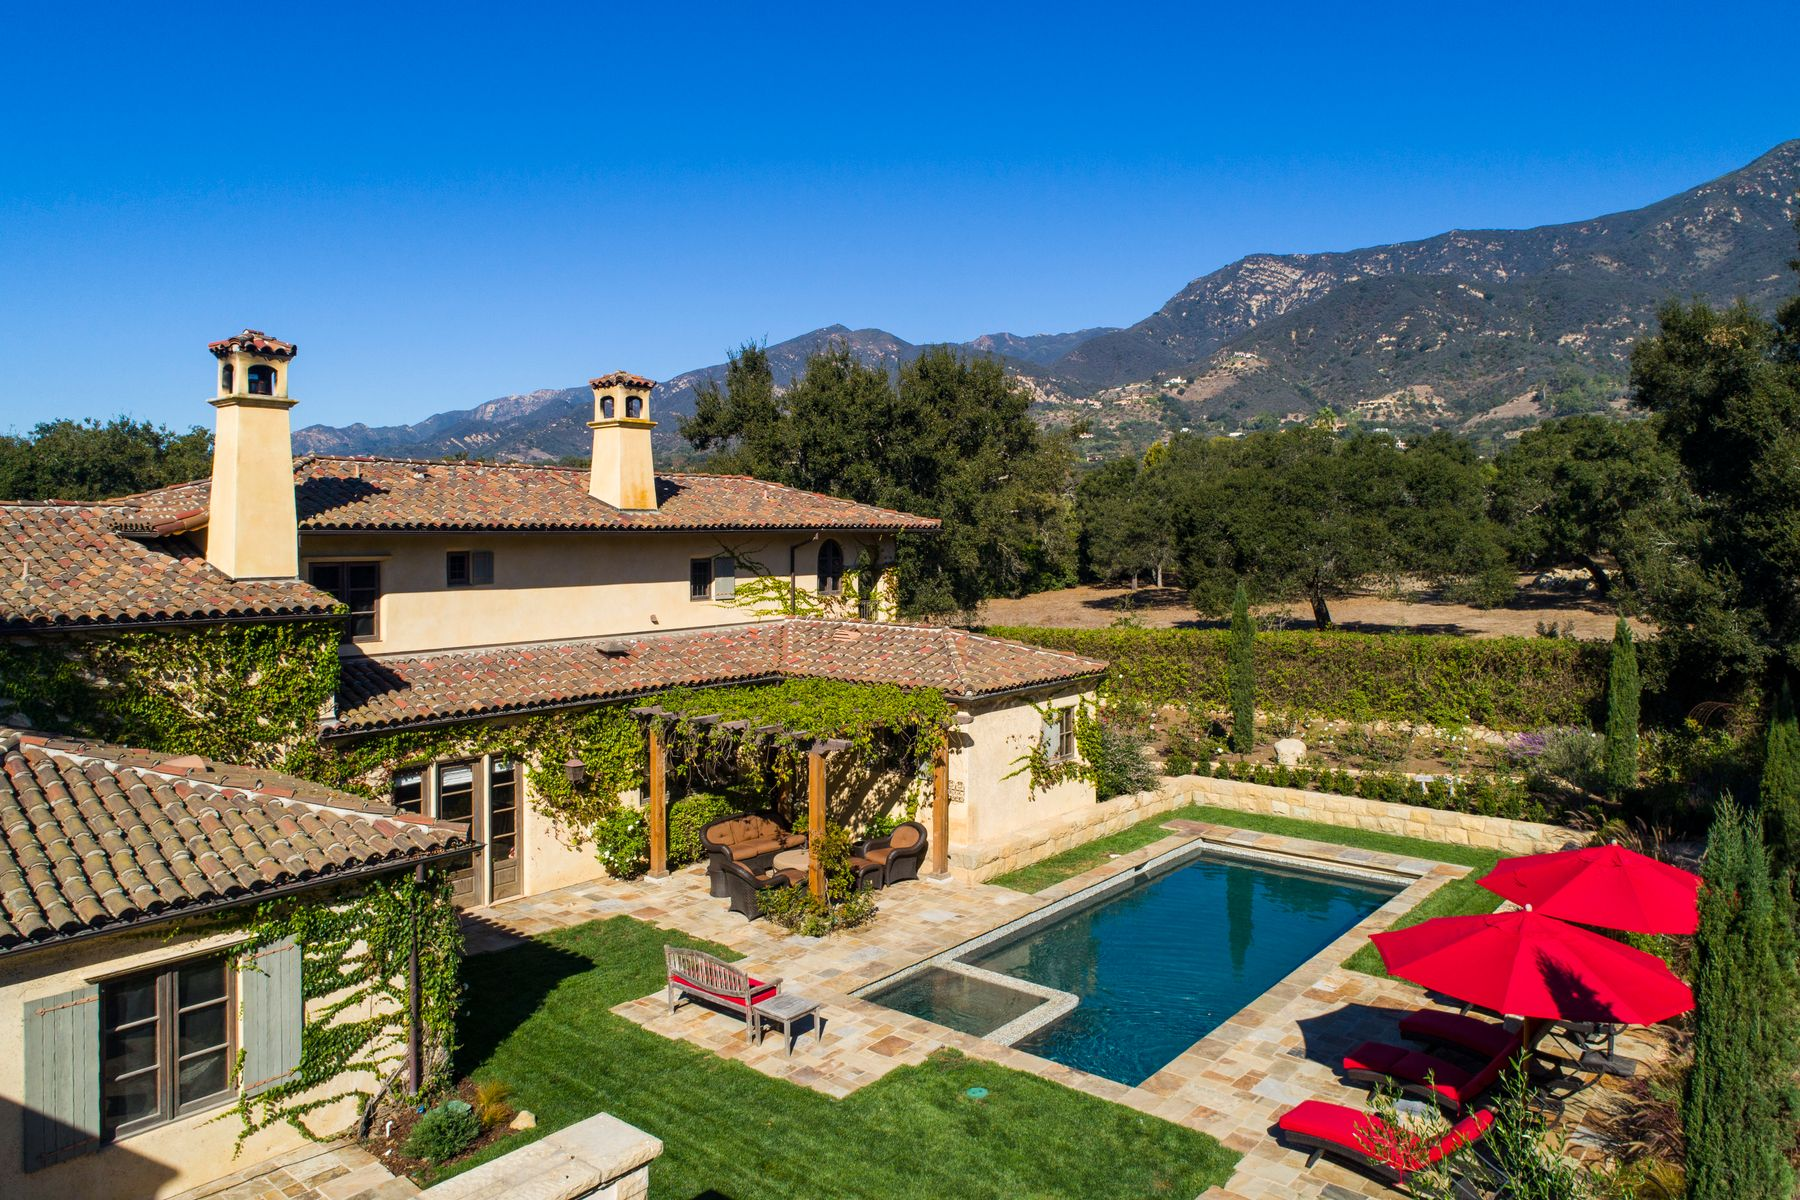 Single Family Homes for Sale at Old World Montecito Mediterranean 2222 East Valley Road Montecito, California 93108 United States